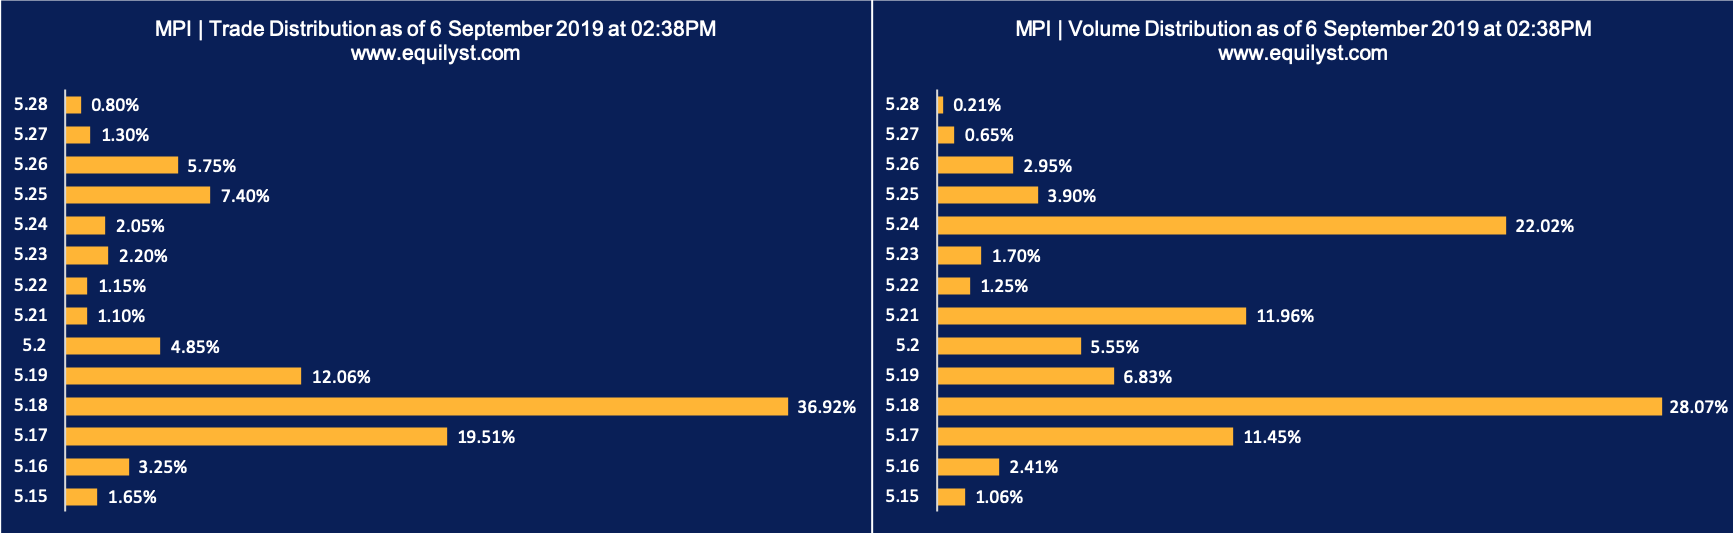 Metro Pacific Investments Corporation (MPI) - Trade Volume Distribution 1 - 9.6.2019